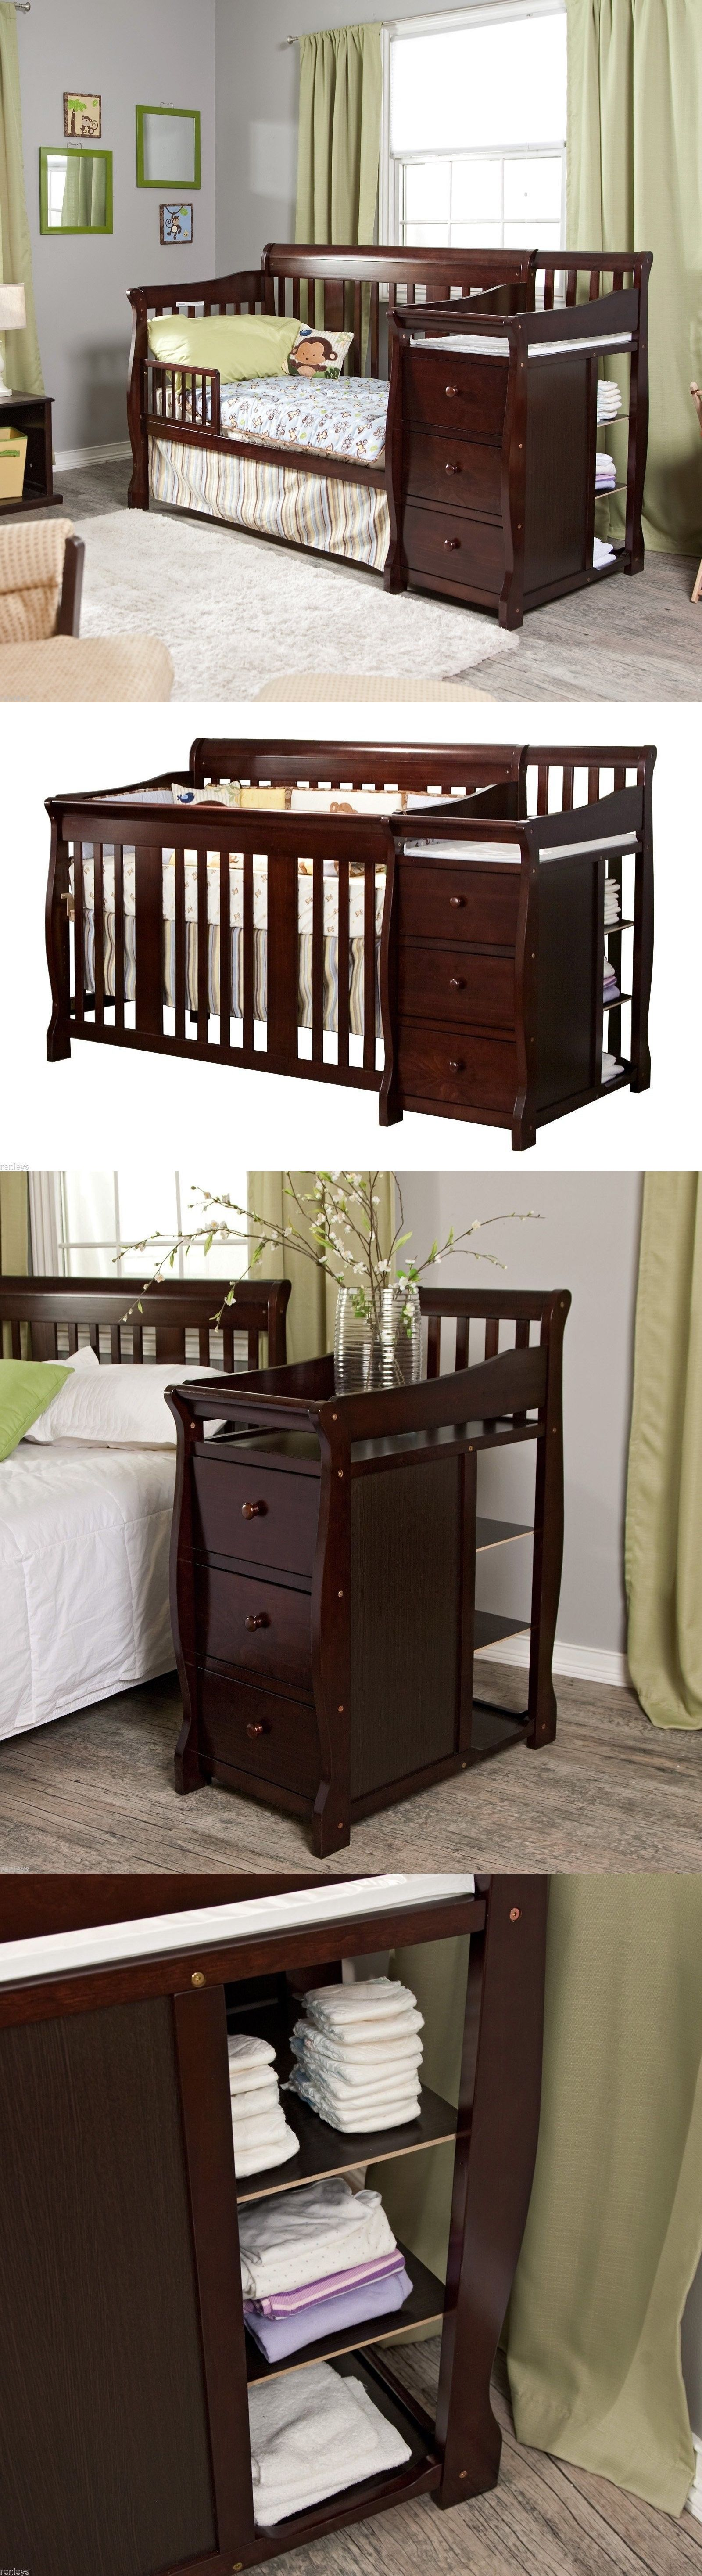 Cribs 2985: 4 In 1 Side Convertible Crib Changer Nursery Furniture ...